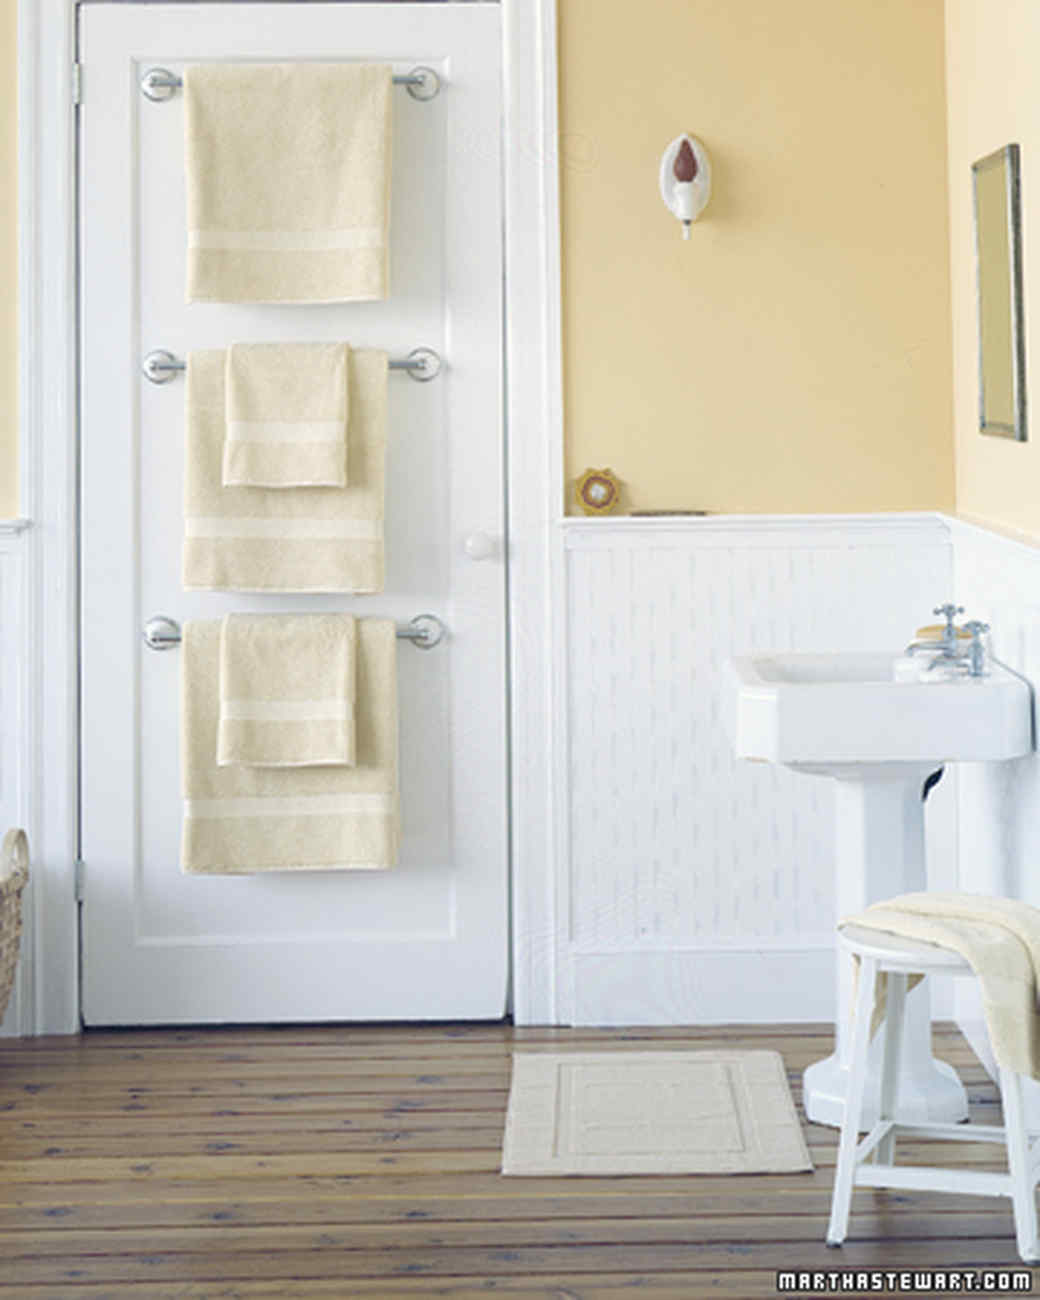 Bathroom Organizers Martha Stewart - Bathroom accessories ideas for small bathroom ideas